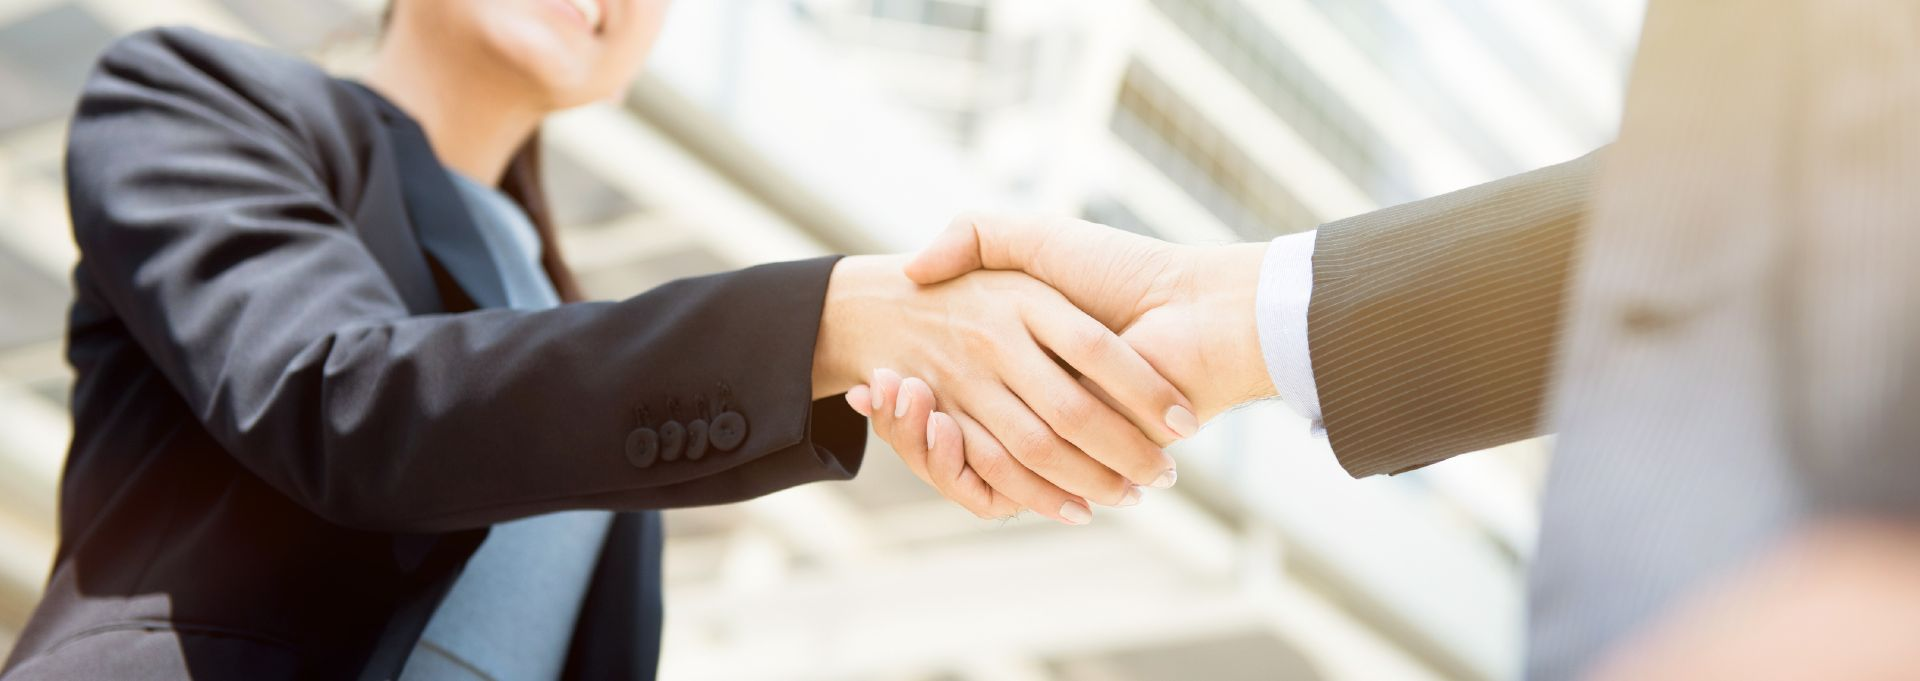 business, handshake